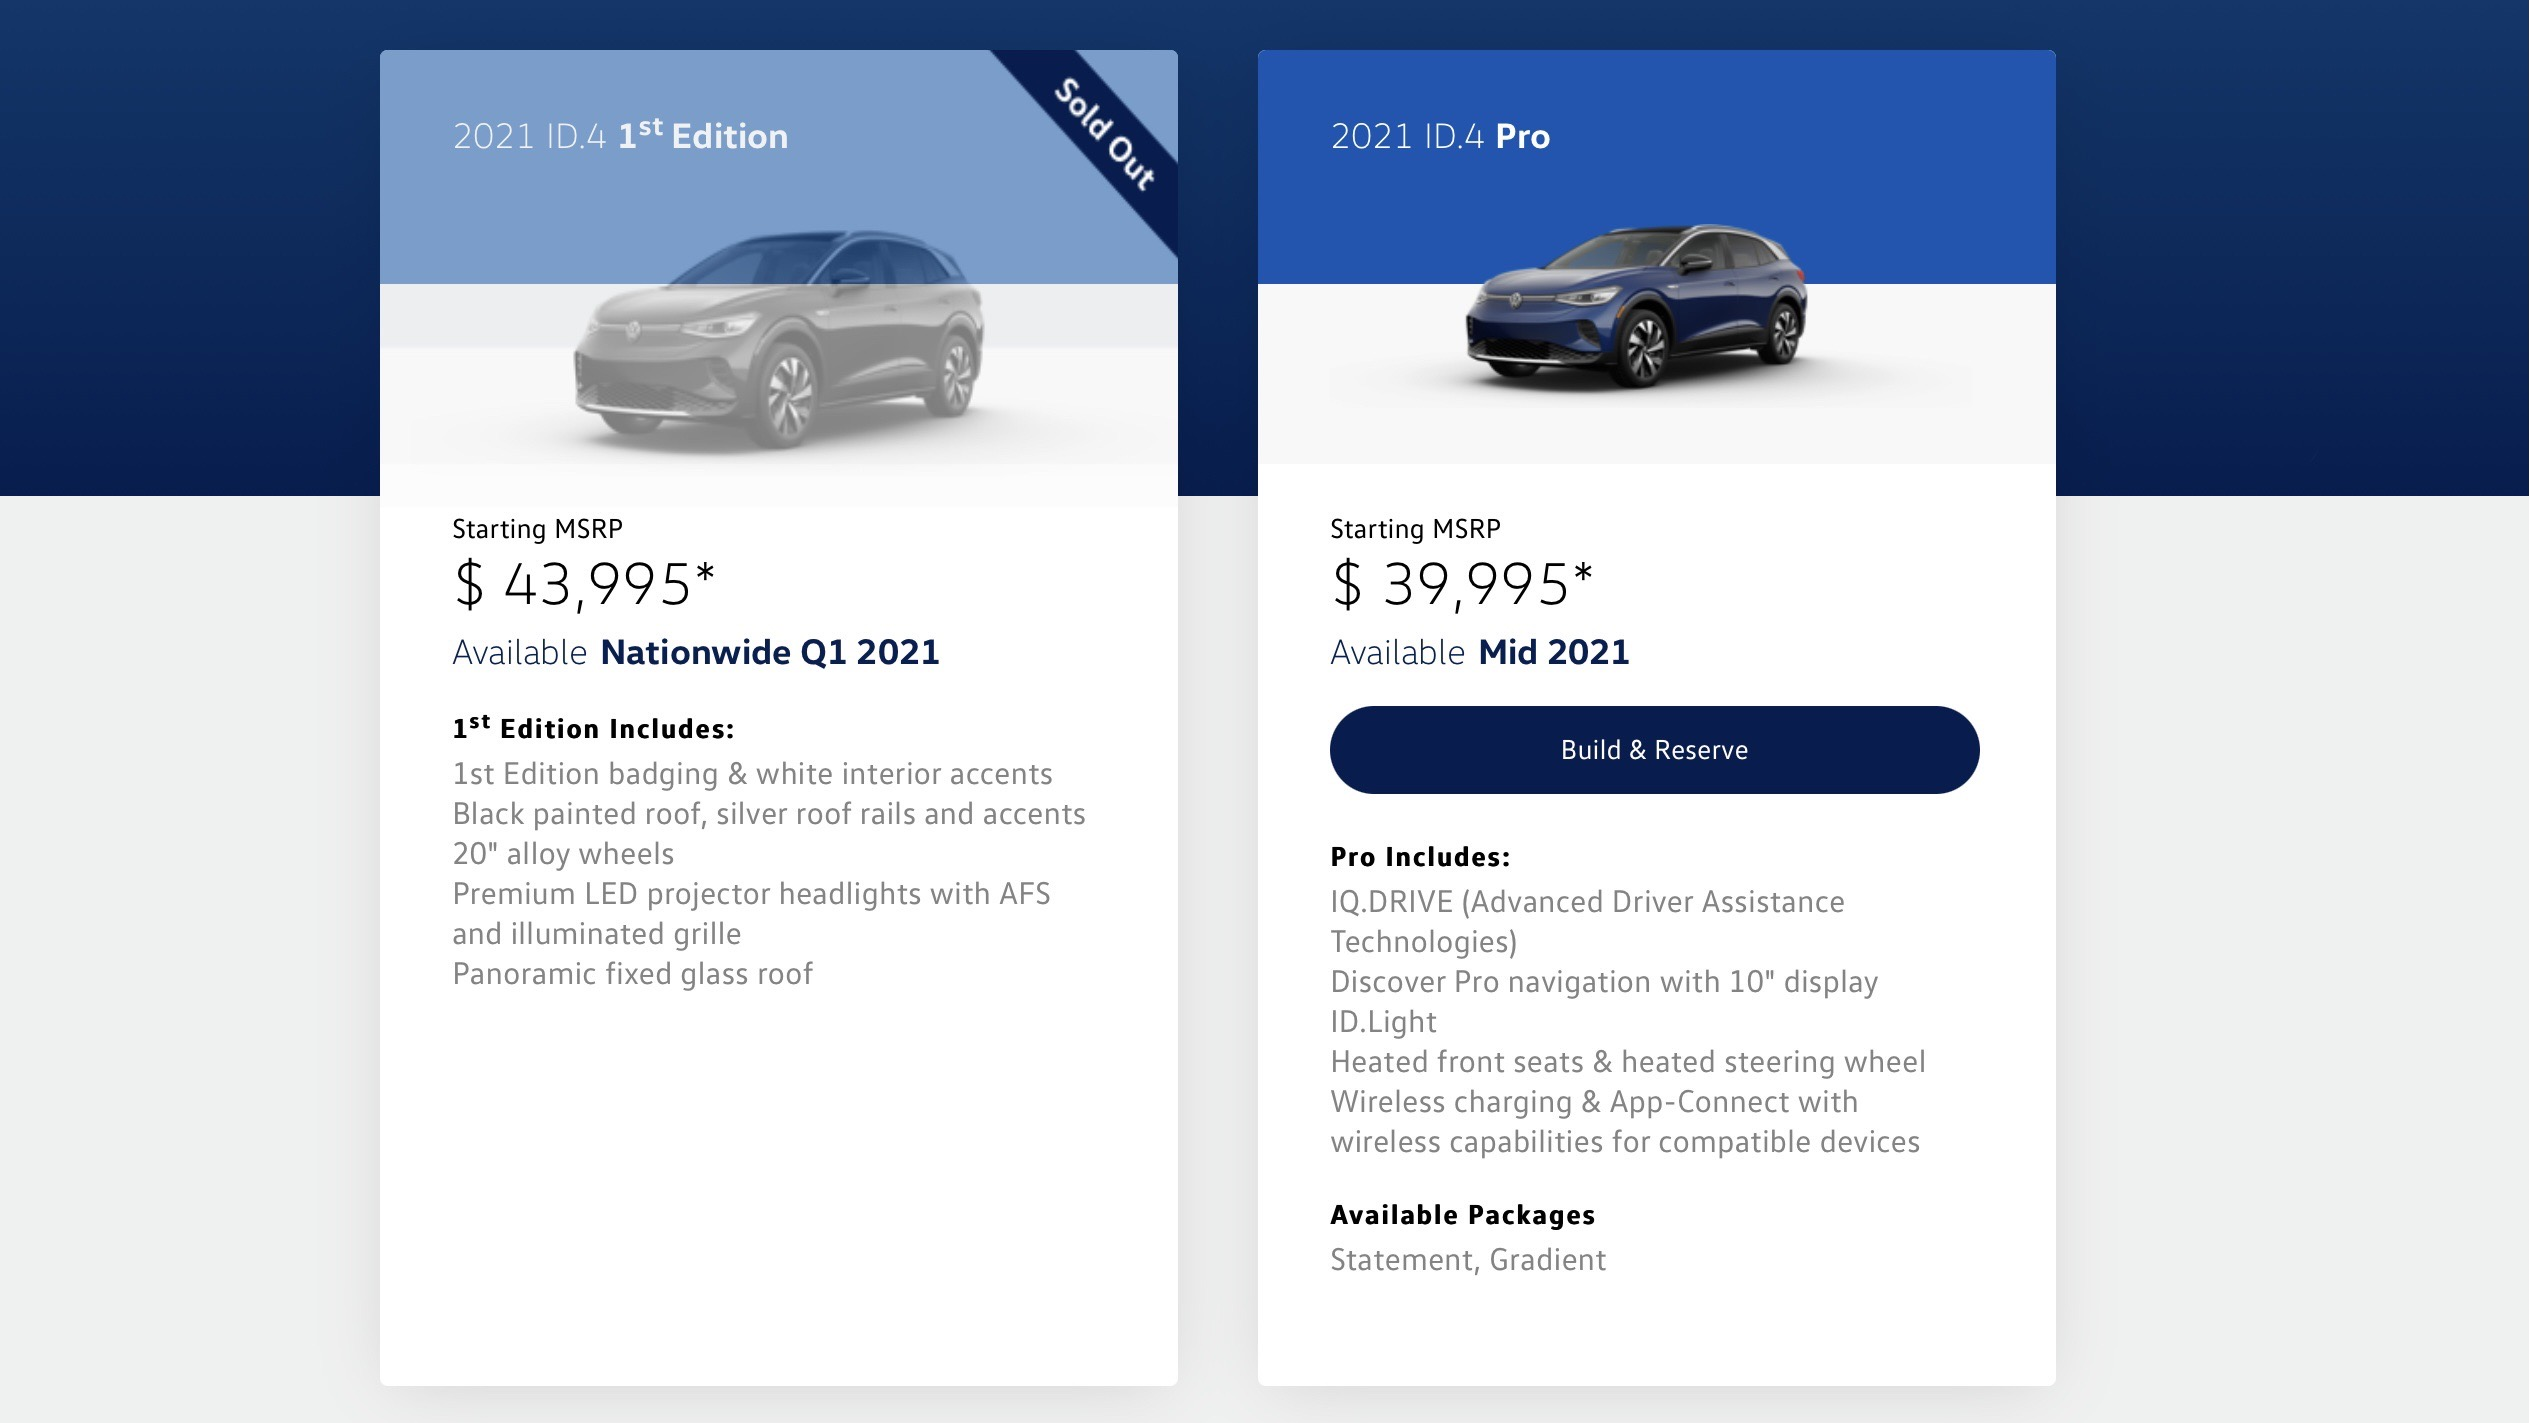 La Volkswagen ID.4 1st Edition sold out in poche ore negli USA